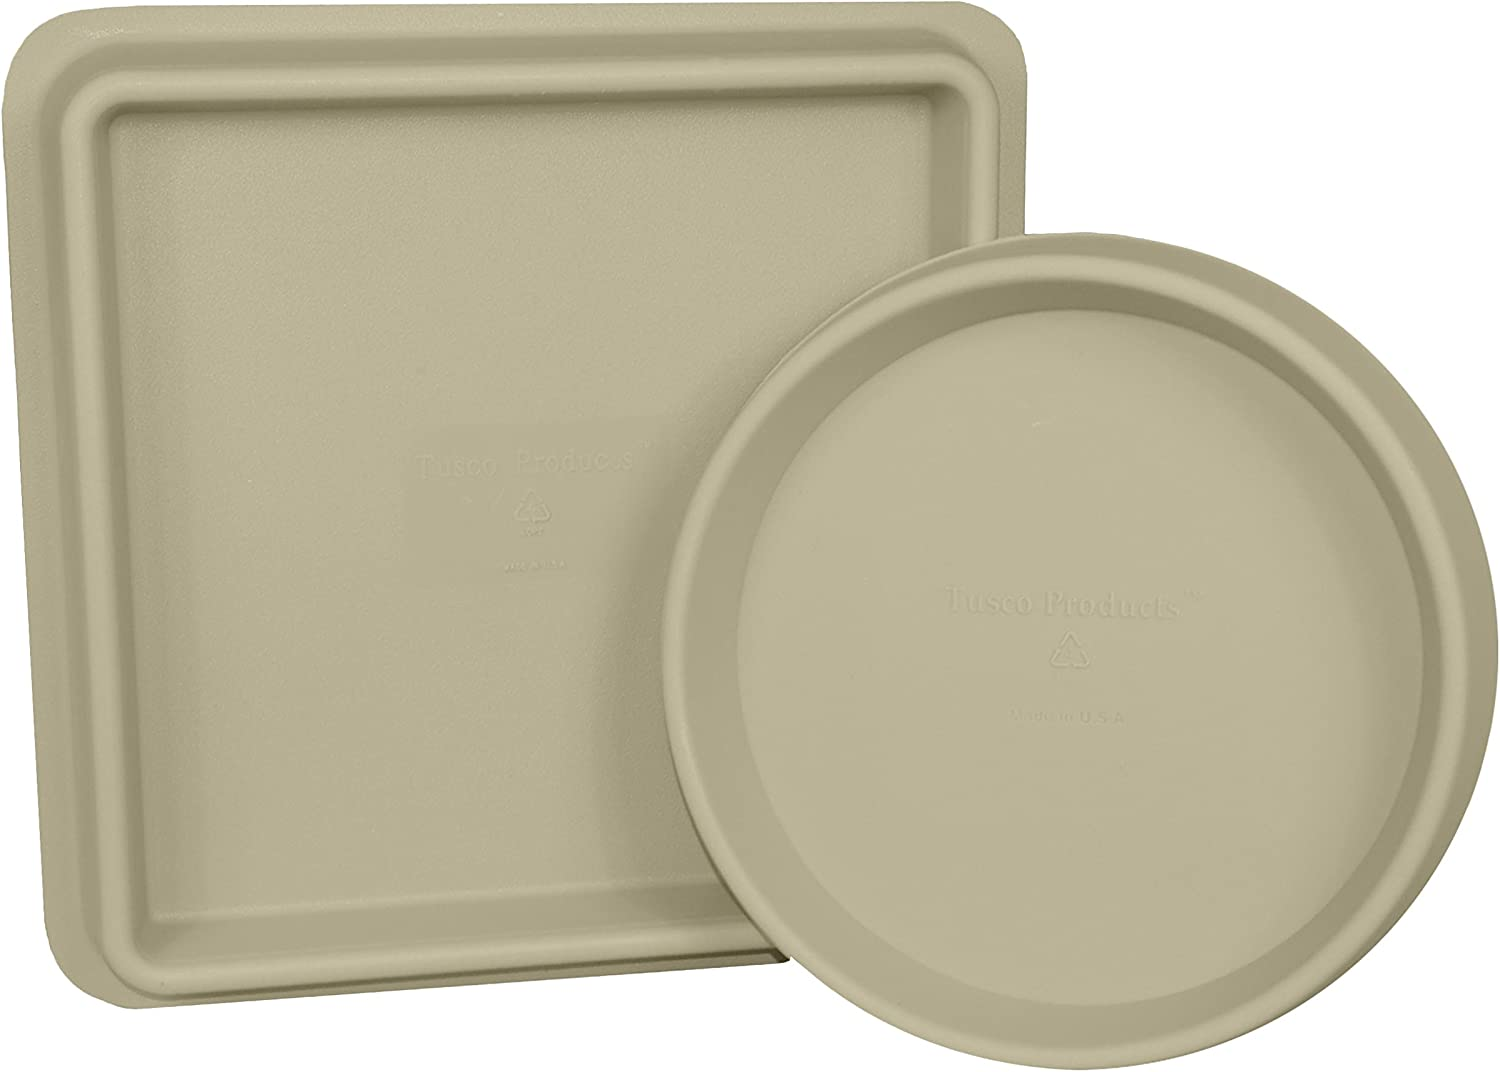 Desert Tusco Products TRSQ11DS Square Saucer 11